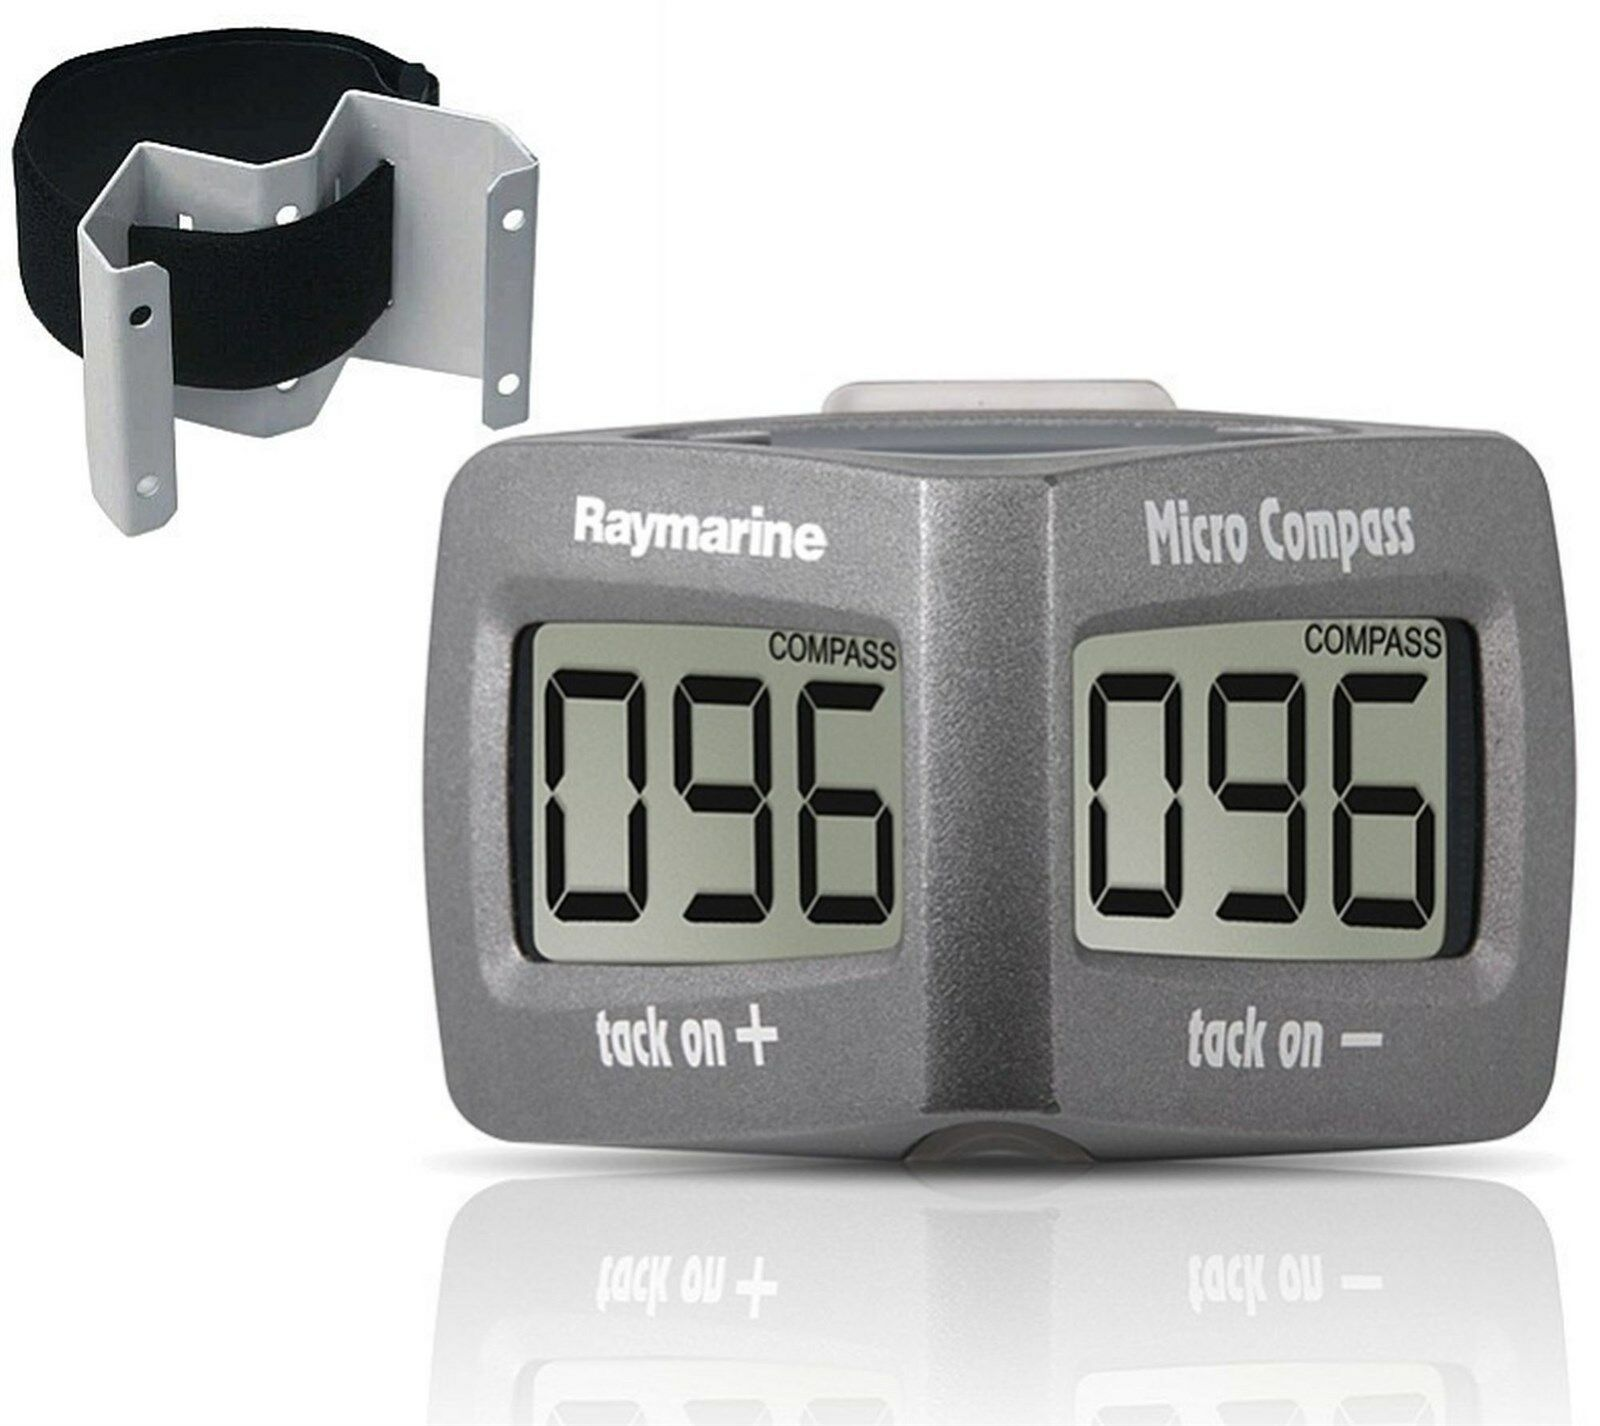 TackTick Raymarine Micro Compass Replacement Velcro for Mast Bracket